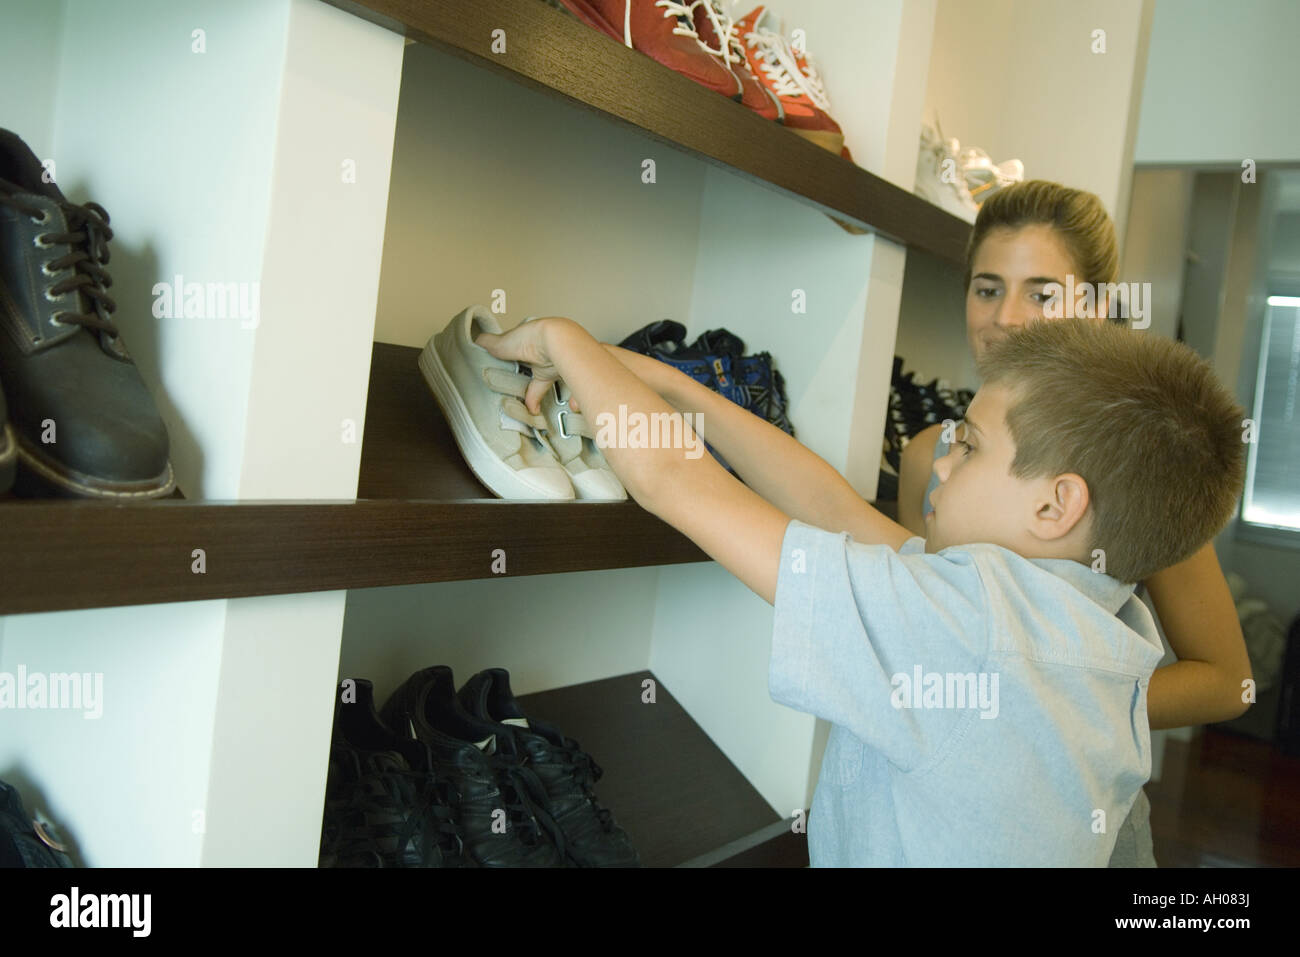 Boy putting shoes on shoe rack while mother watches Stock ... | 1300 x 957 jpeg 105kB